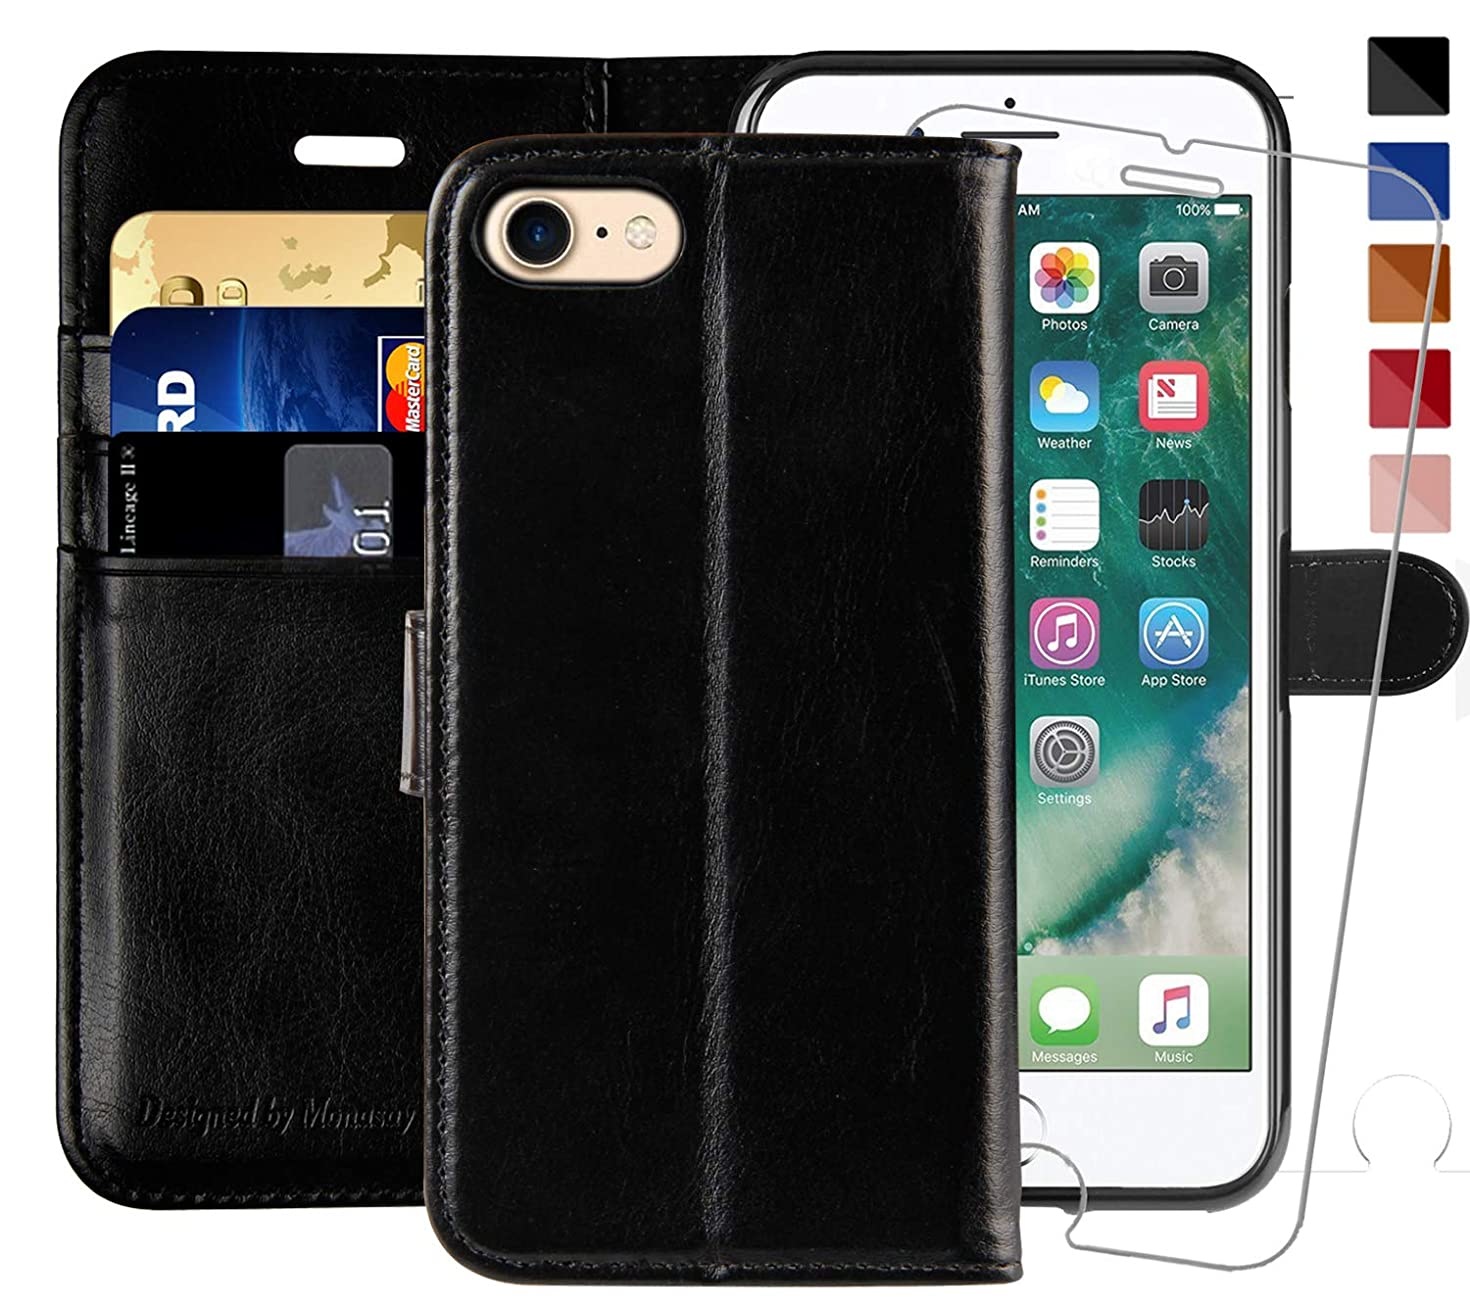 iPhone 6 Wallet Case/iPhone 6s Wallet Case,4.7-inch, MONASAY [Glass Screen Protector Included] Flip Folio Leather Cell Phone Cover with Credit Card Holder for Apple iPhone 6/6S (Black1)